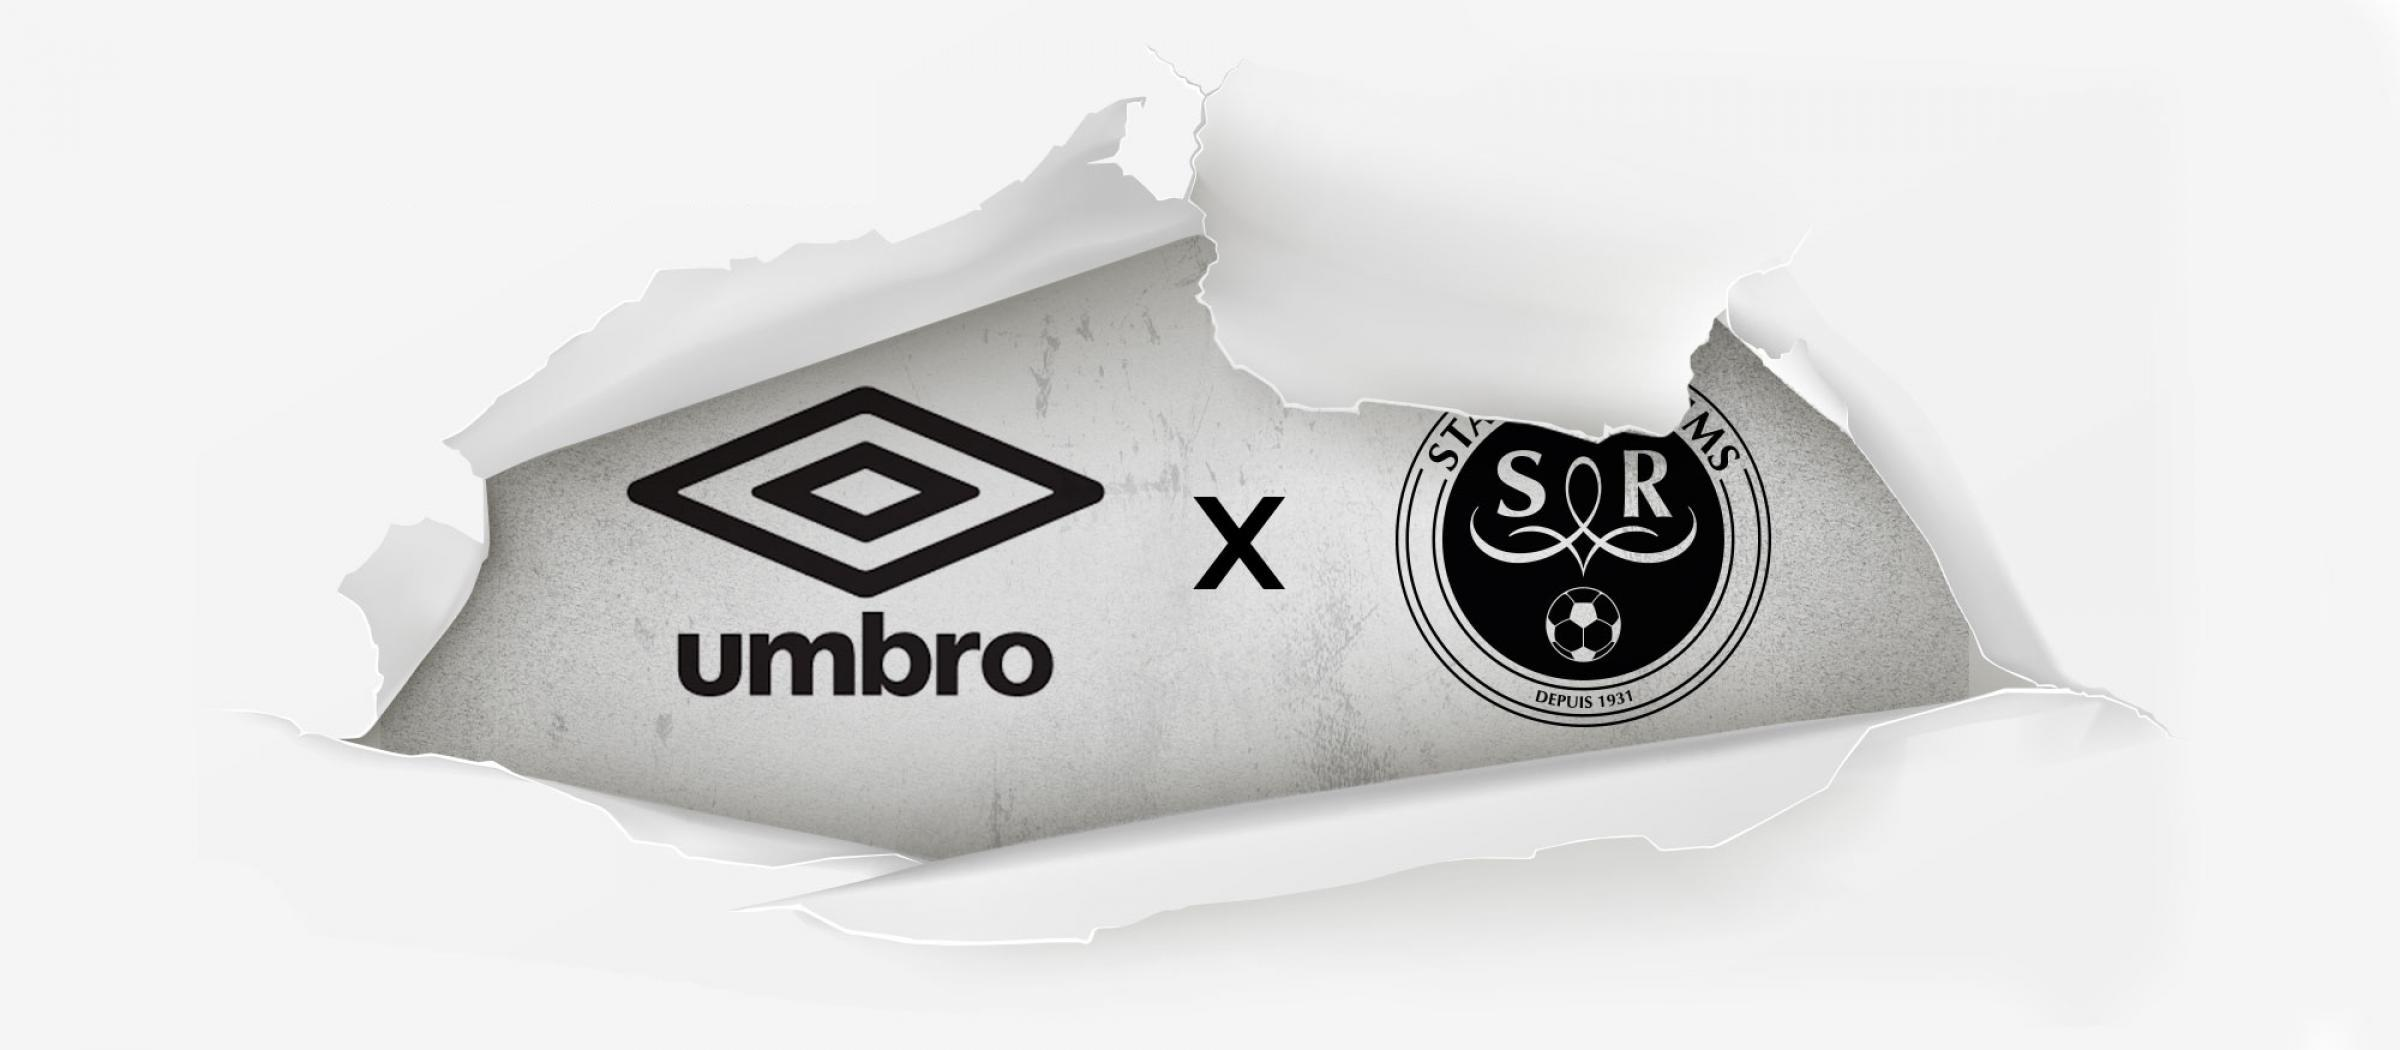 Umbro Nouvel Equipementier Officiel Du Stade De Reims